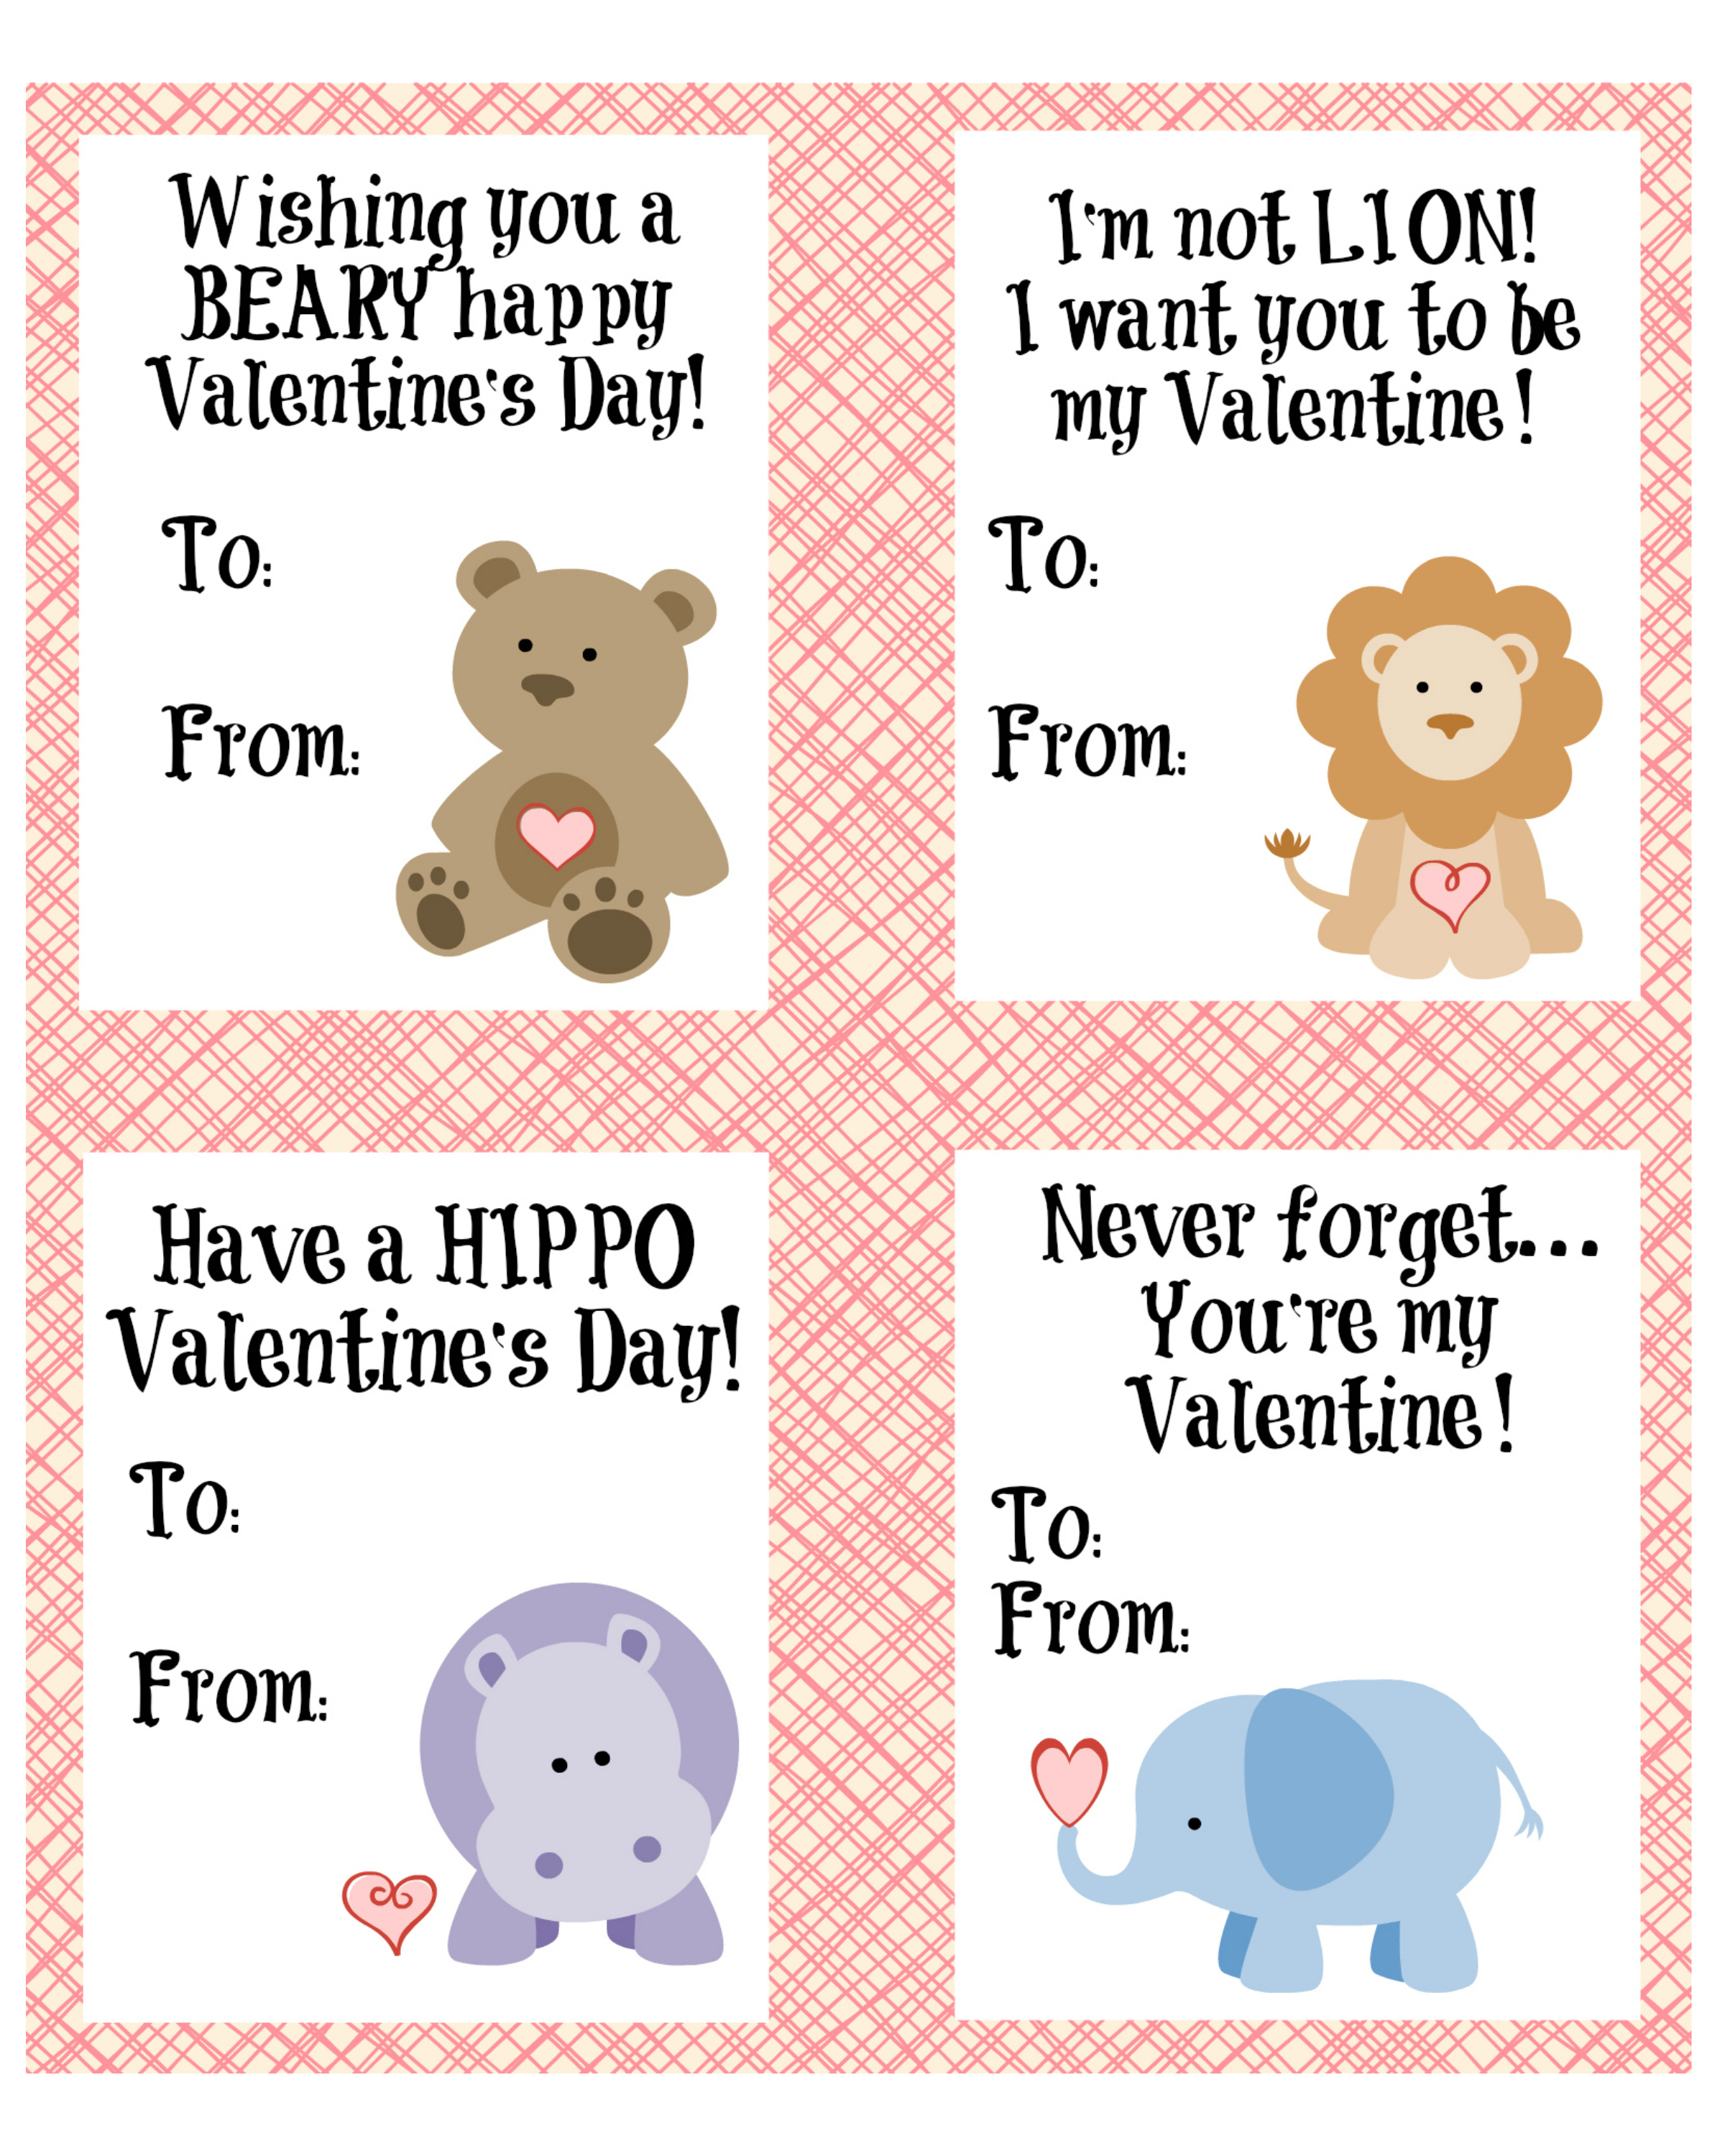 Cute Animal Valentines Day Cards Free Printable-4422